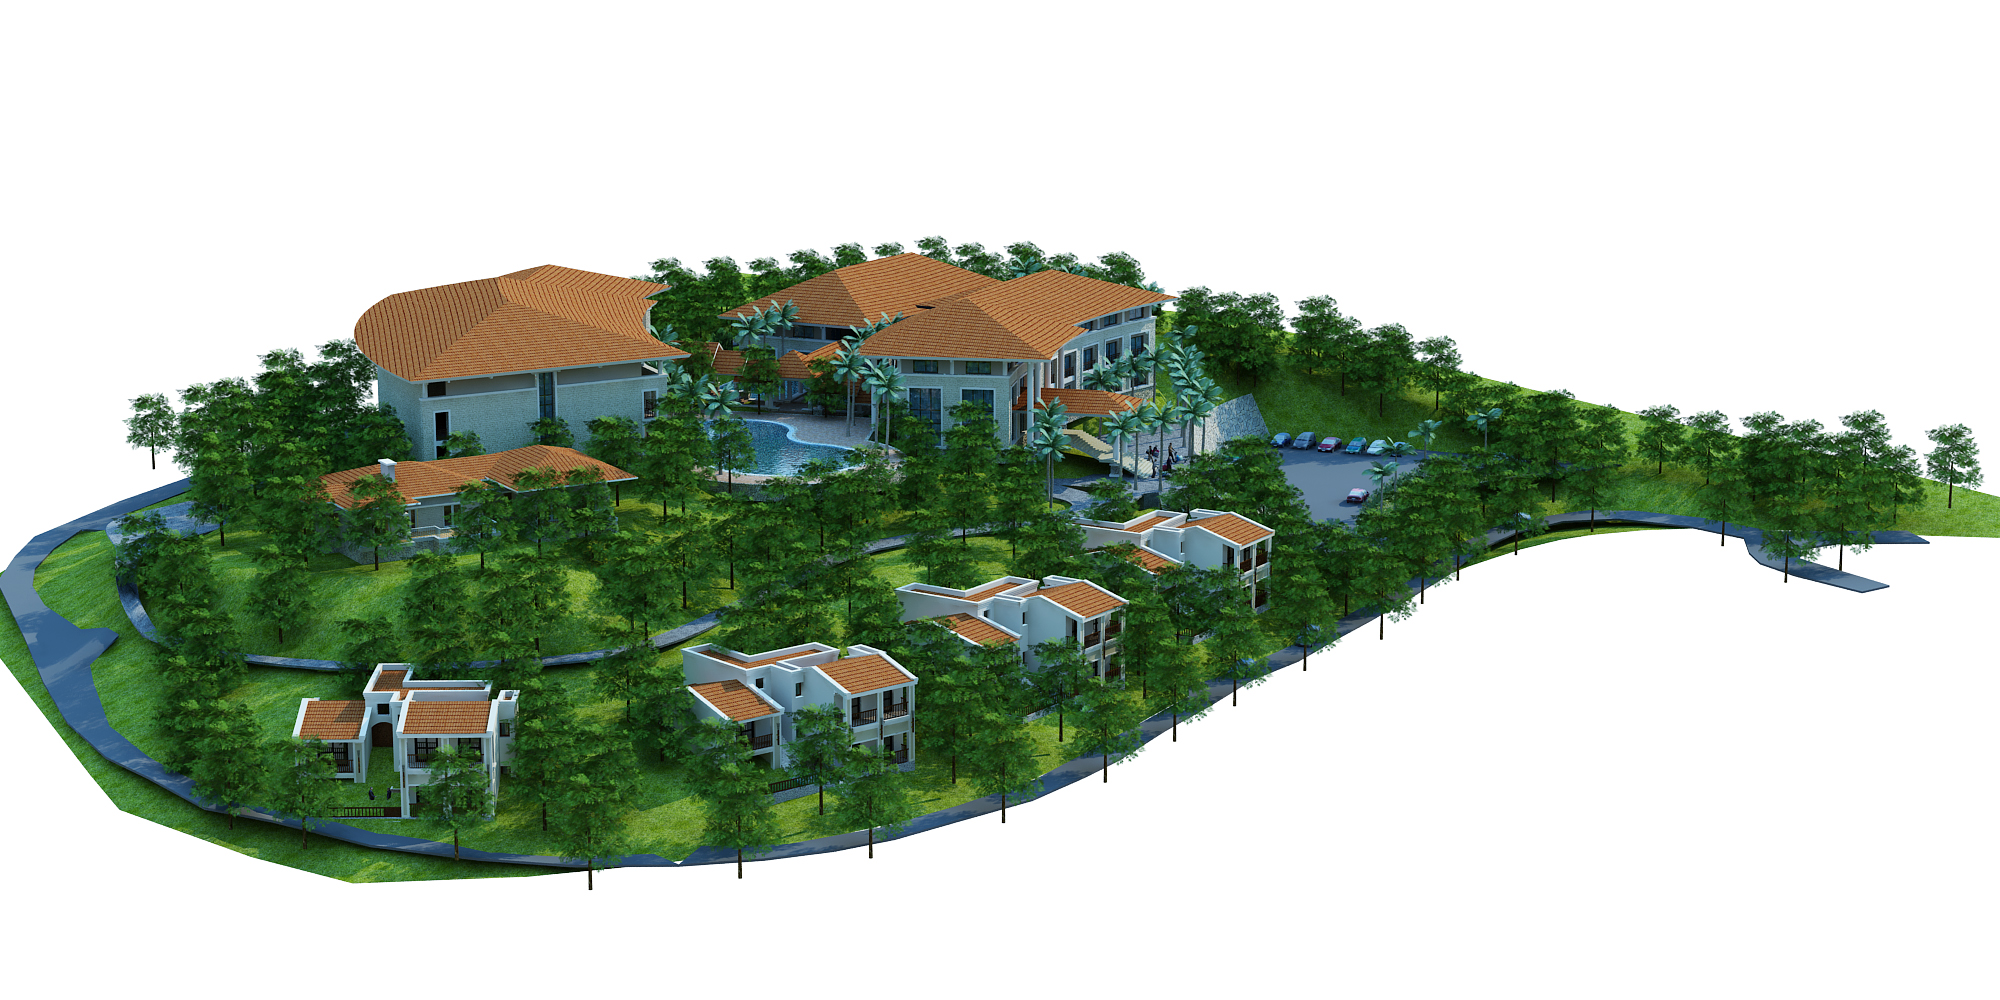 moutain resort hotel 3d model max other 159072